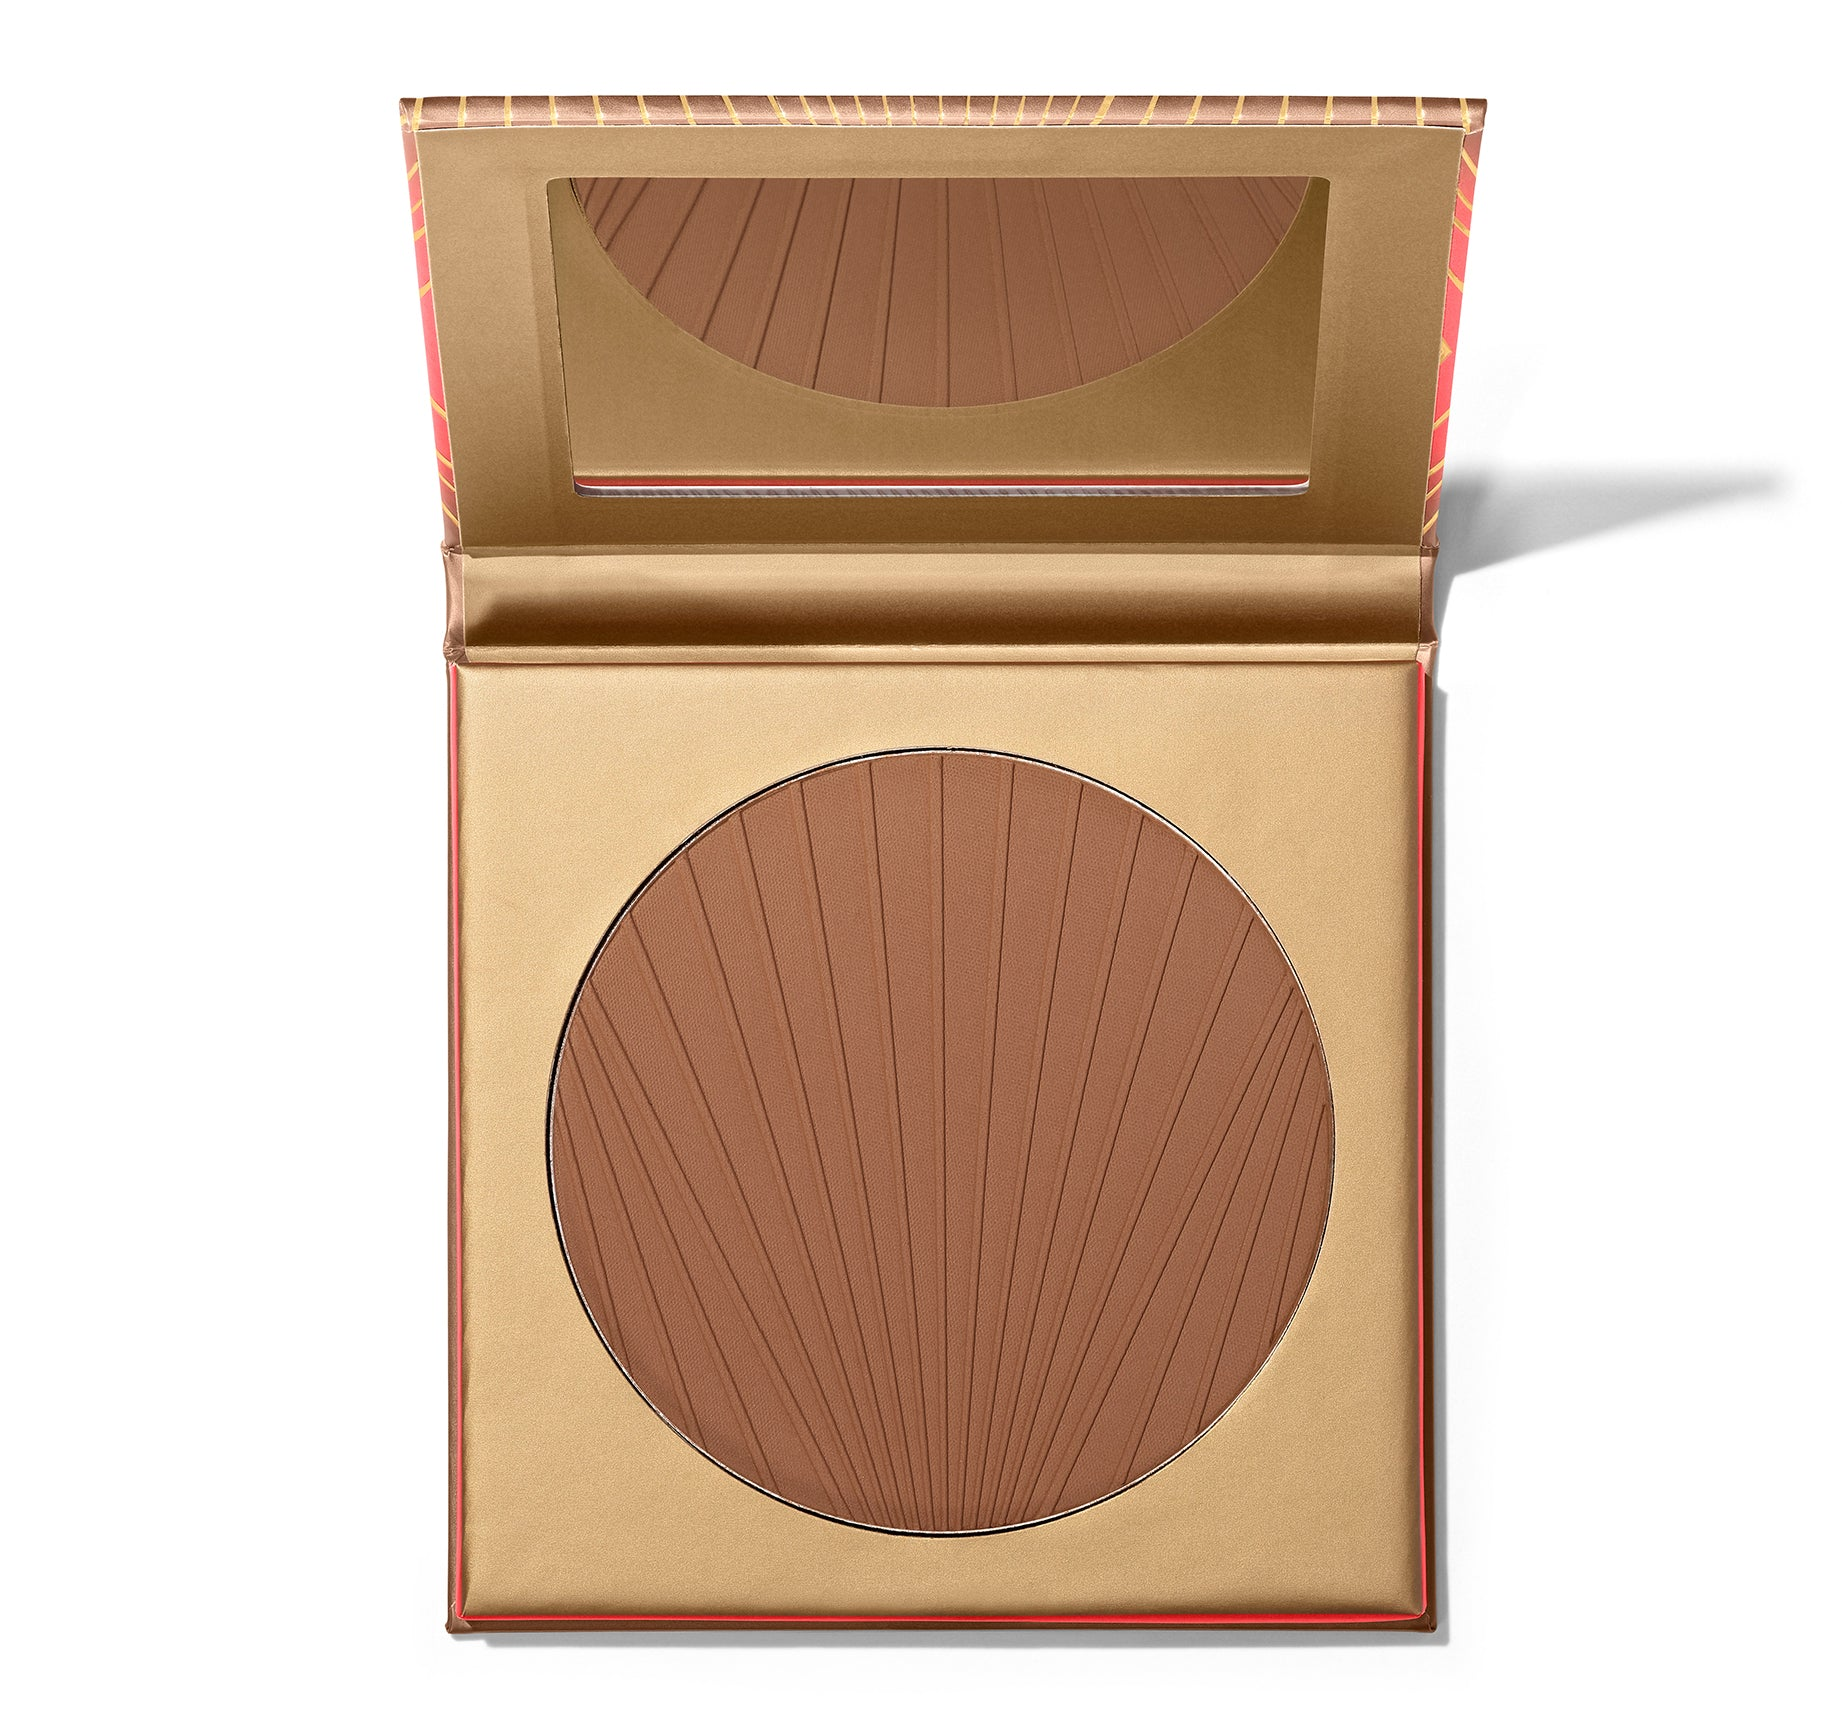 GLAMABRONZE FACE & BODY BRONZER - PHENOM, view larger image